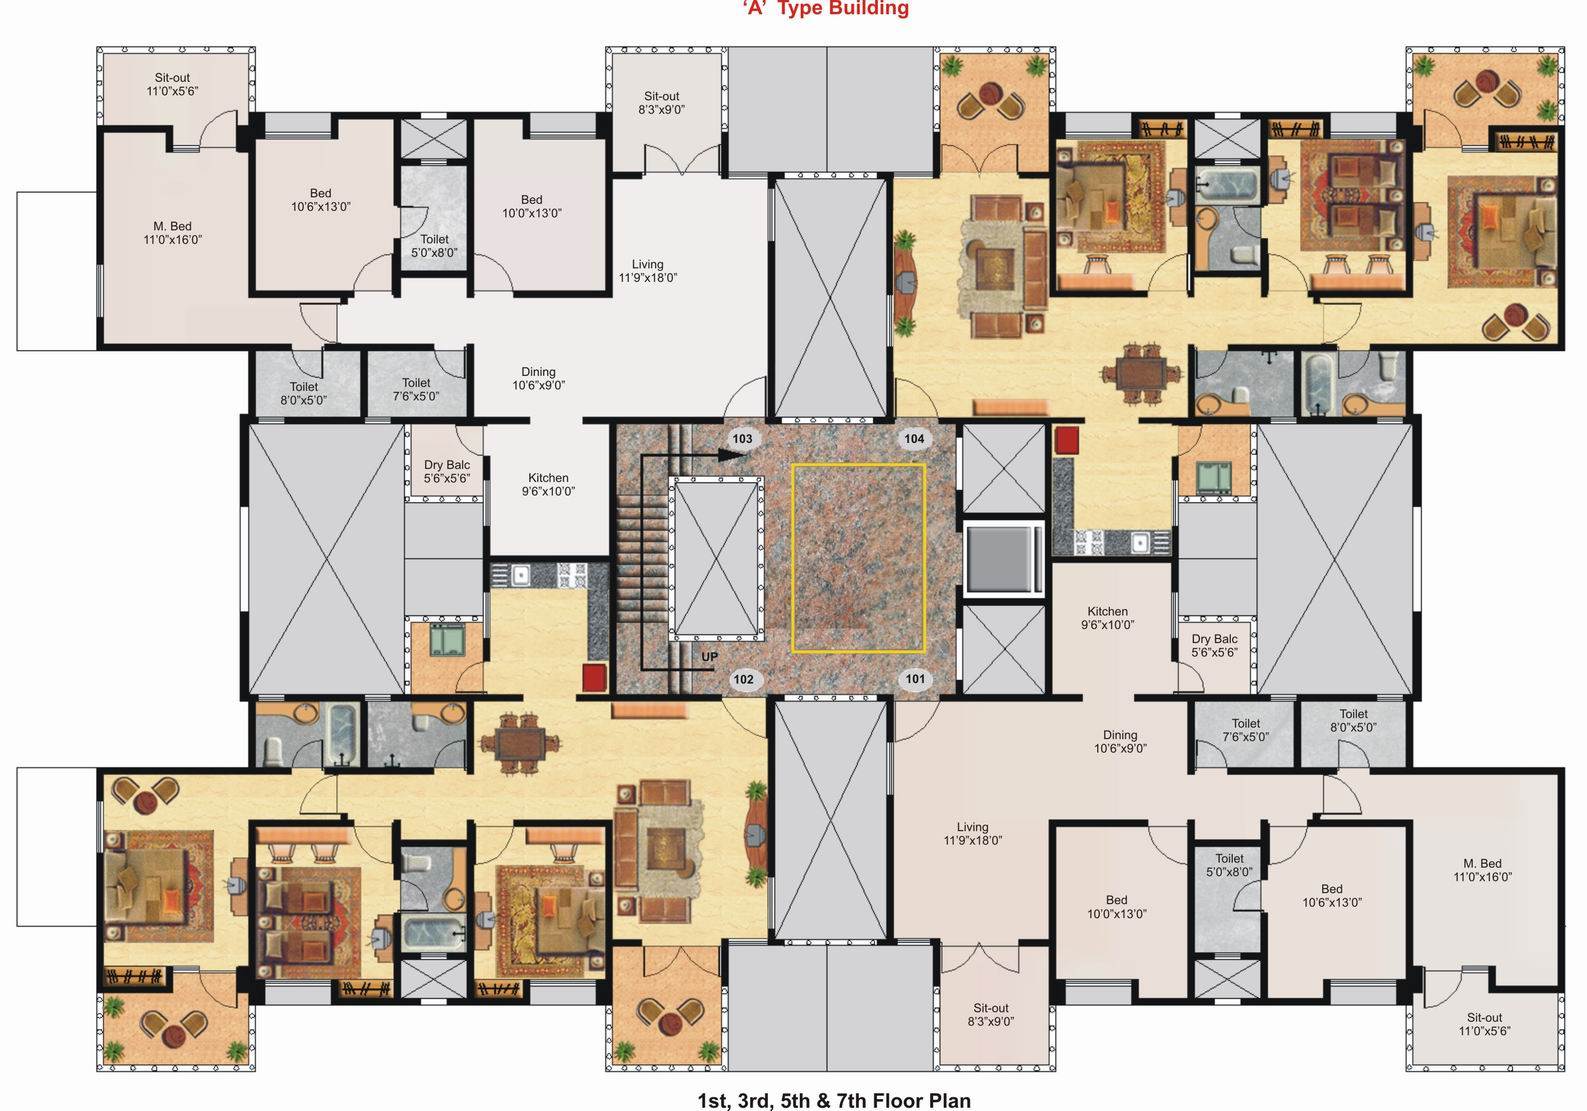 Big Bedroom House Plans 11 Decoration Inspiration Briliant Ndraw House Floor Plan How To Plan Drawing